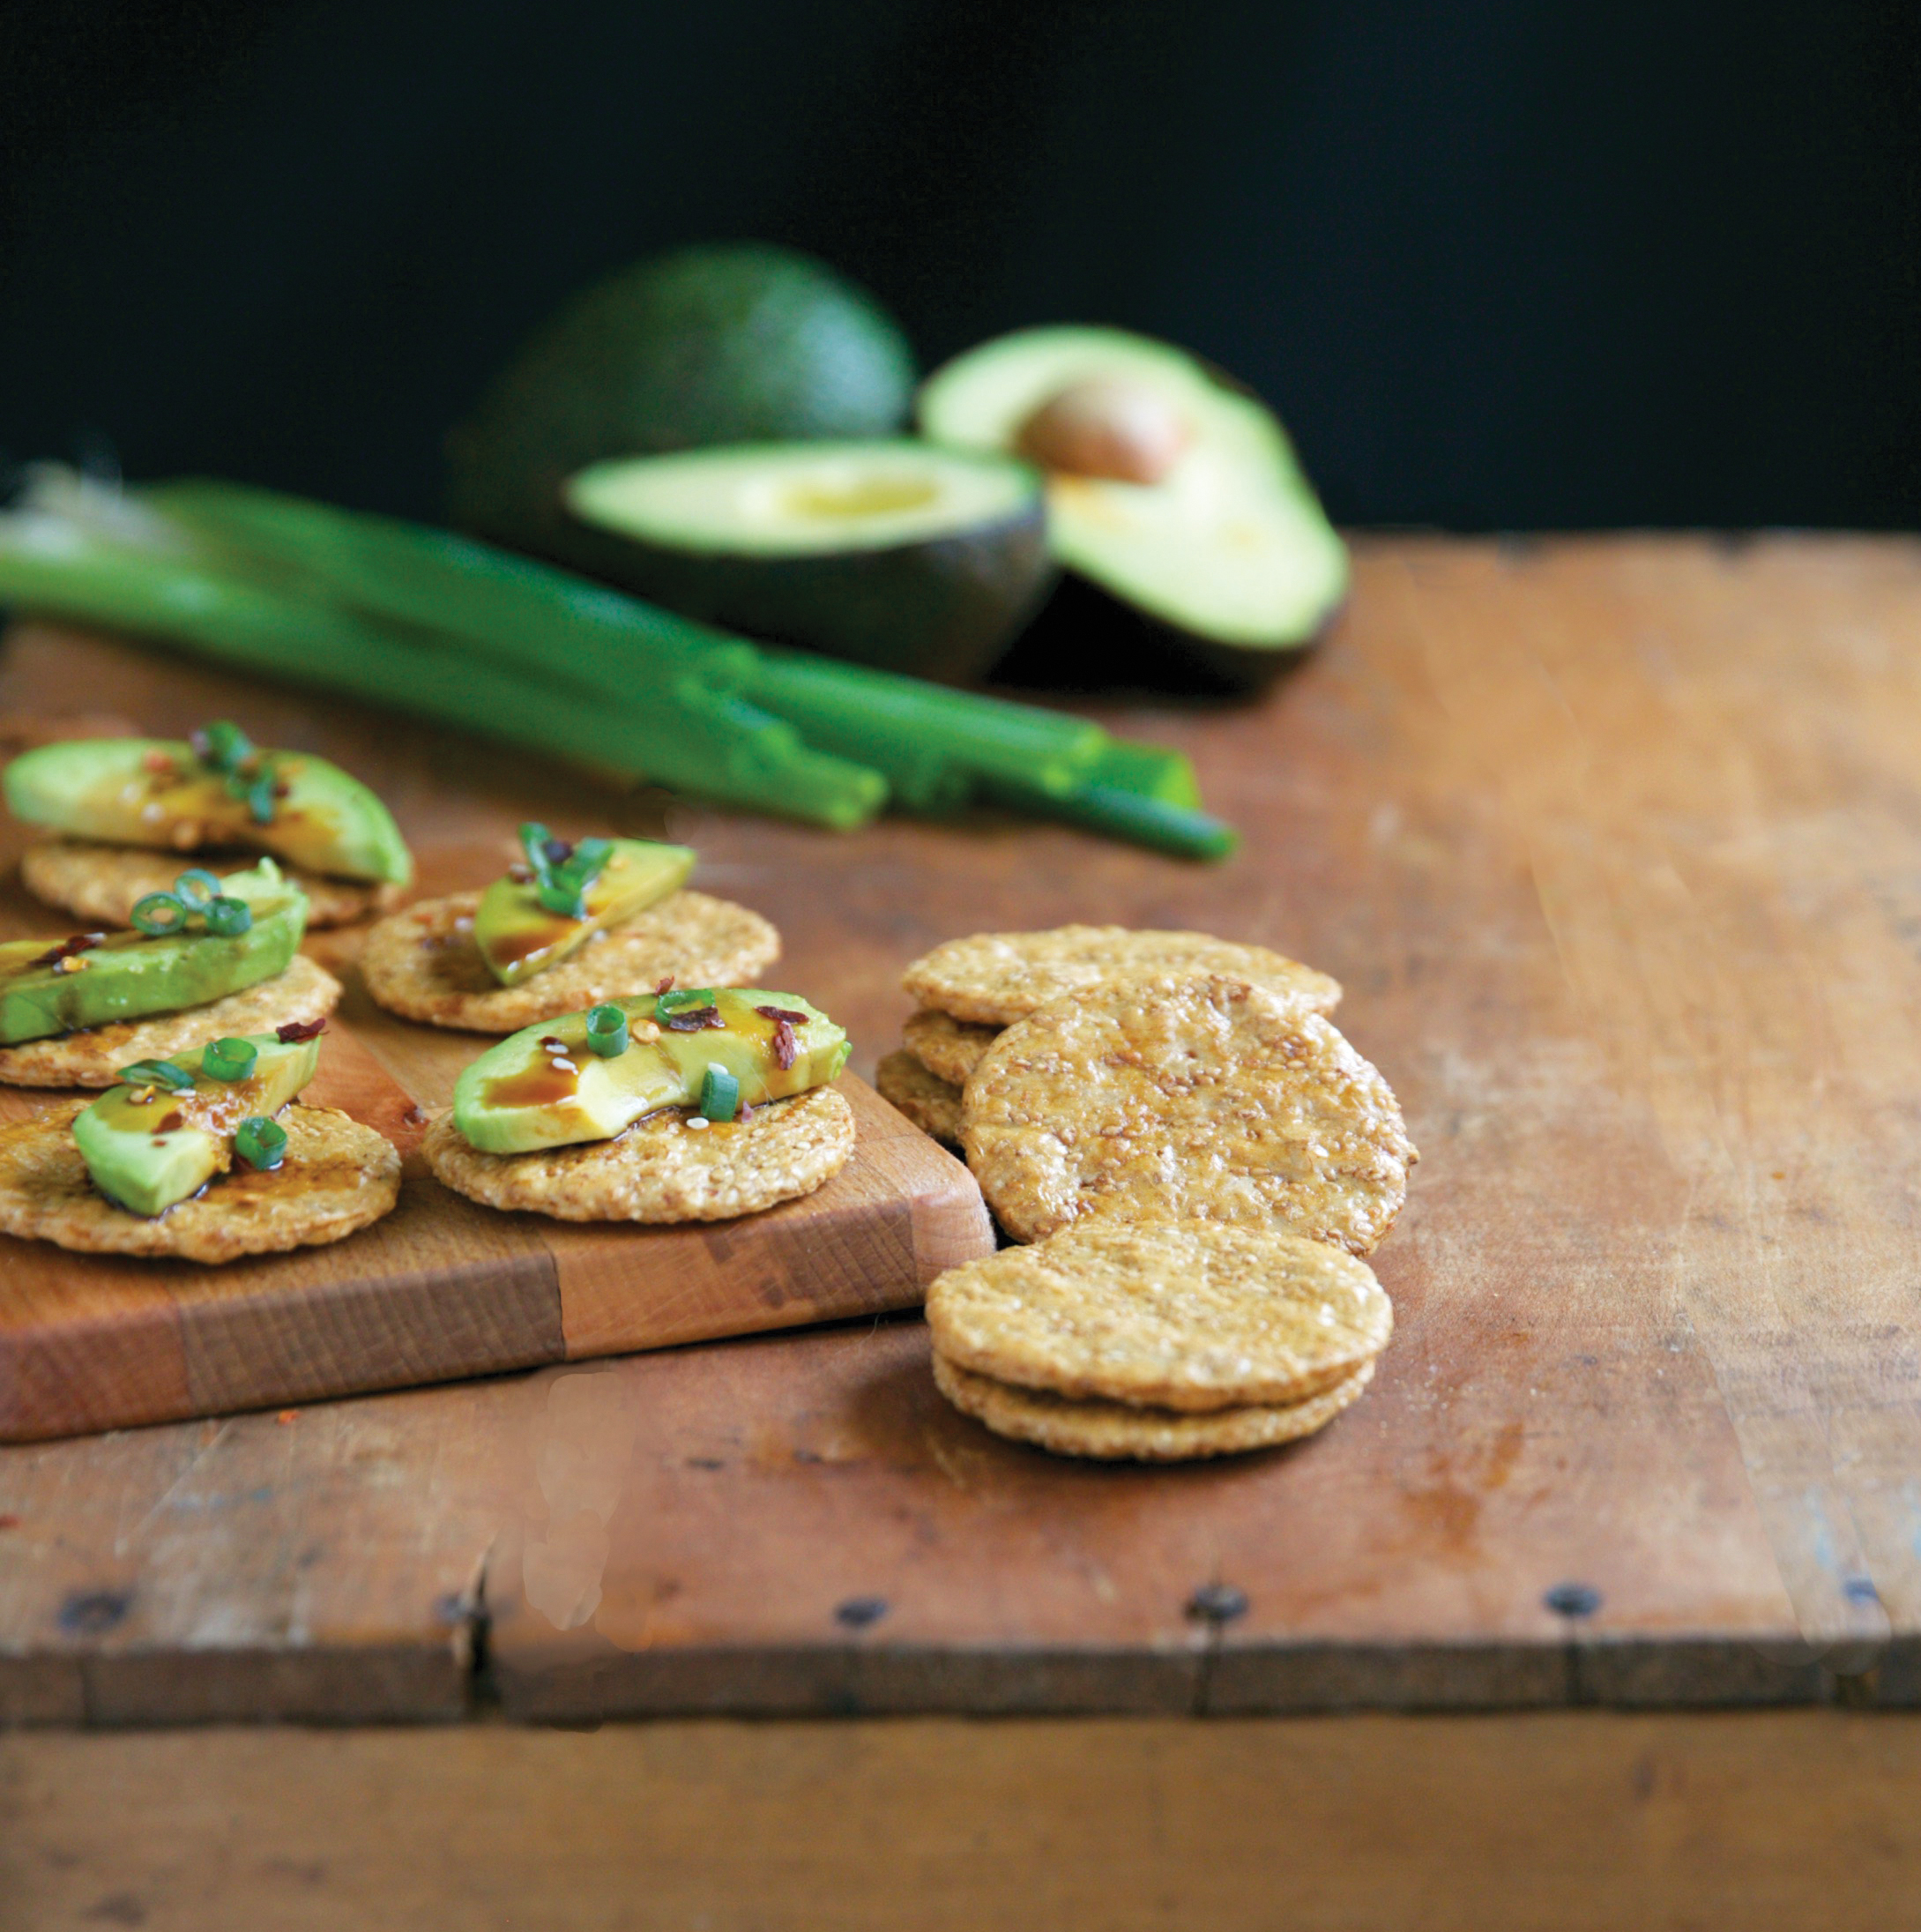 Avocado on crackers on a board by San-J